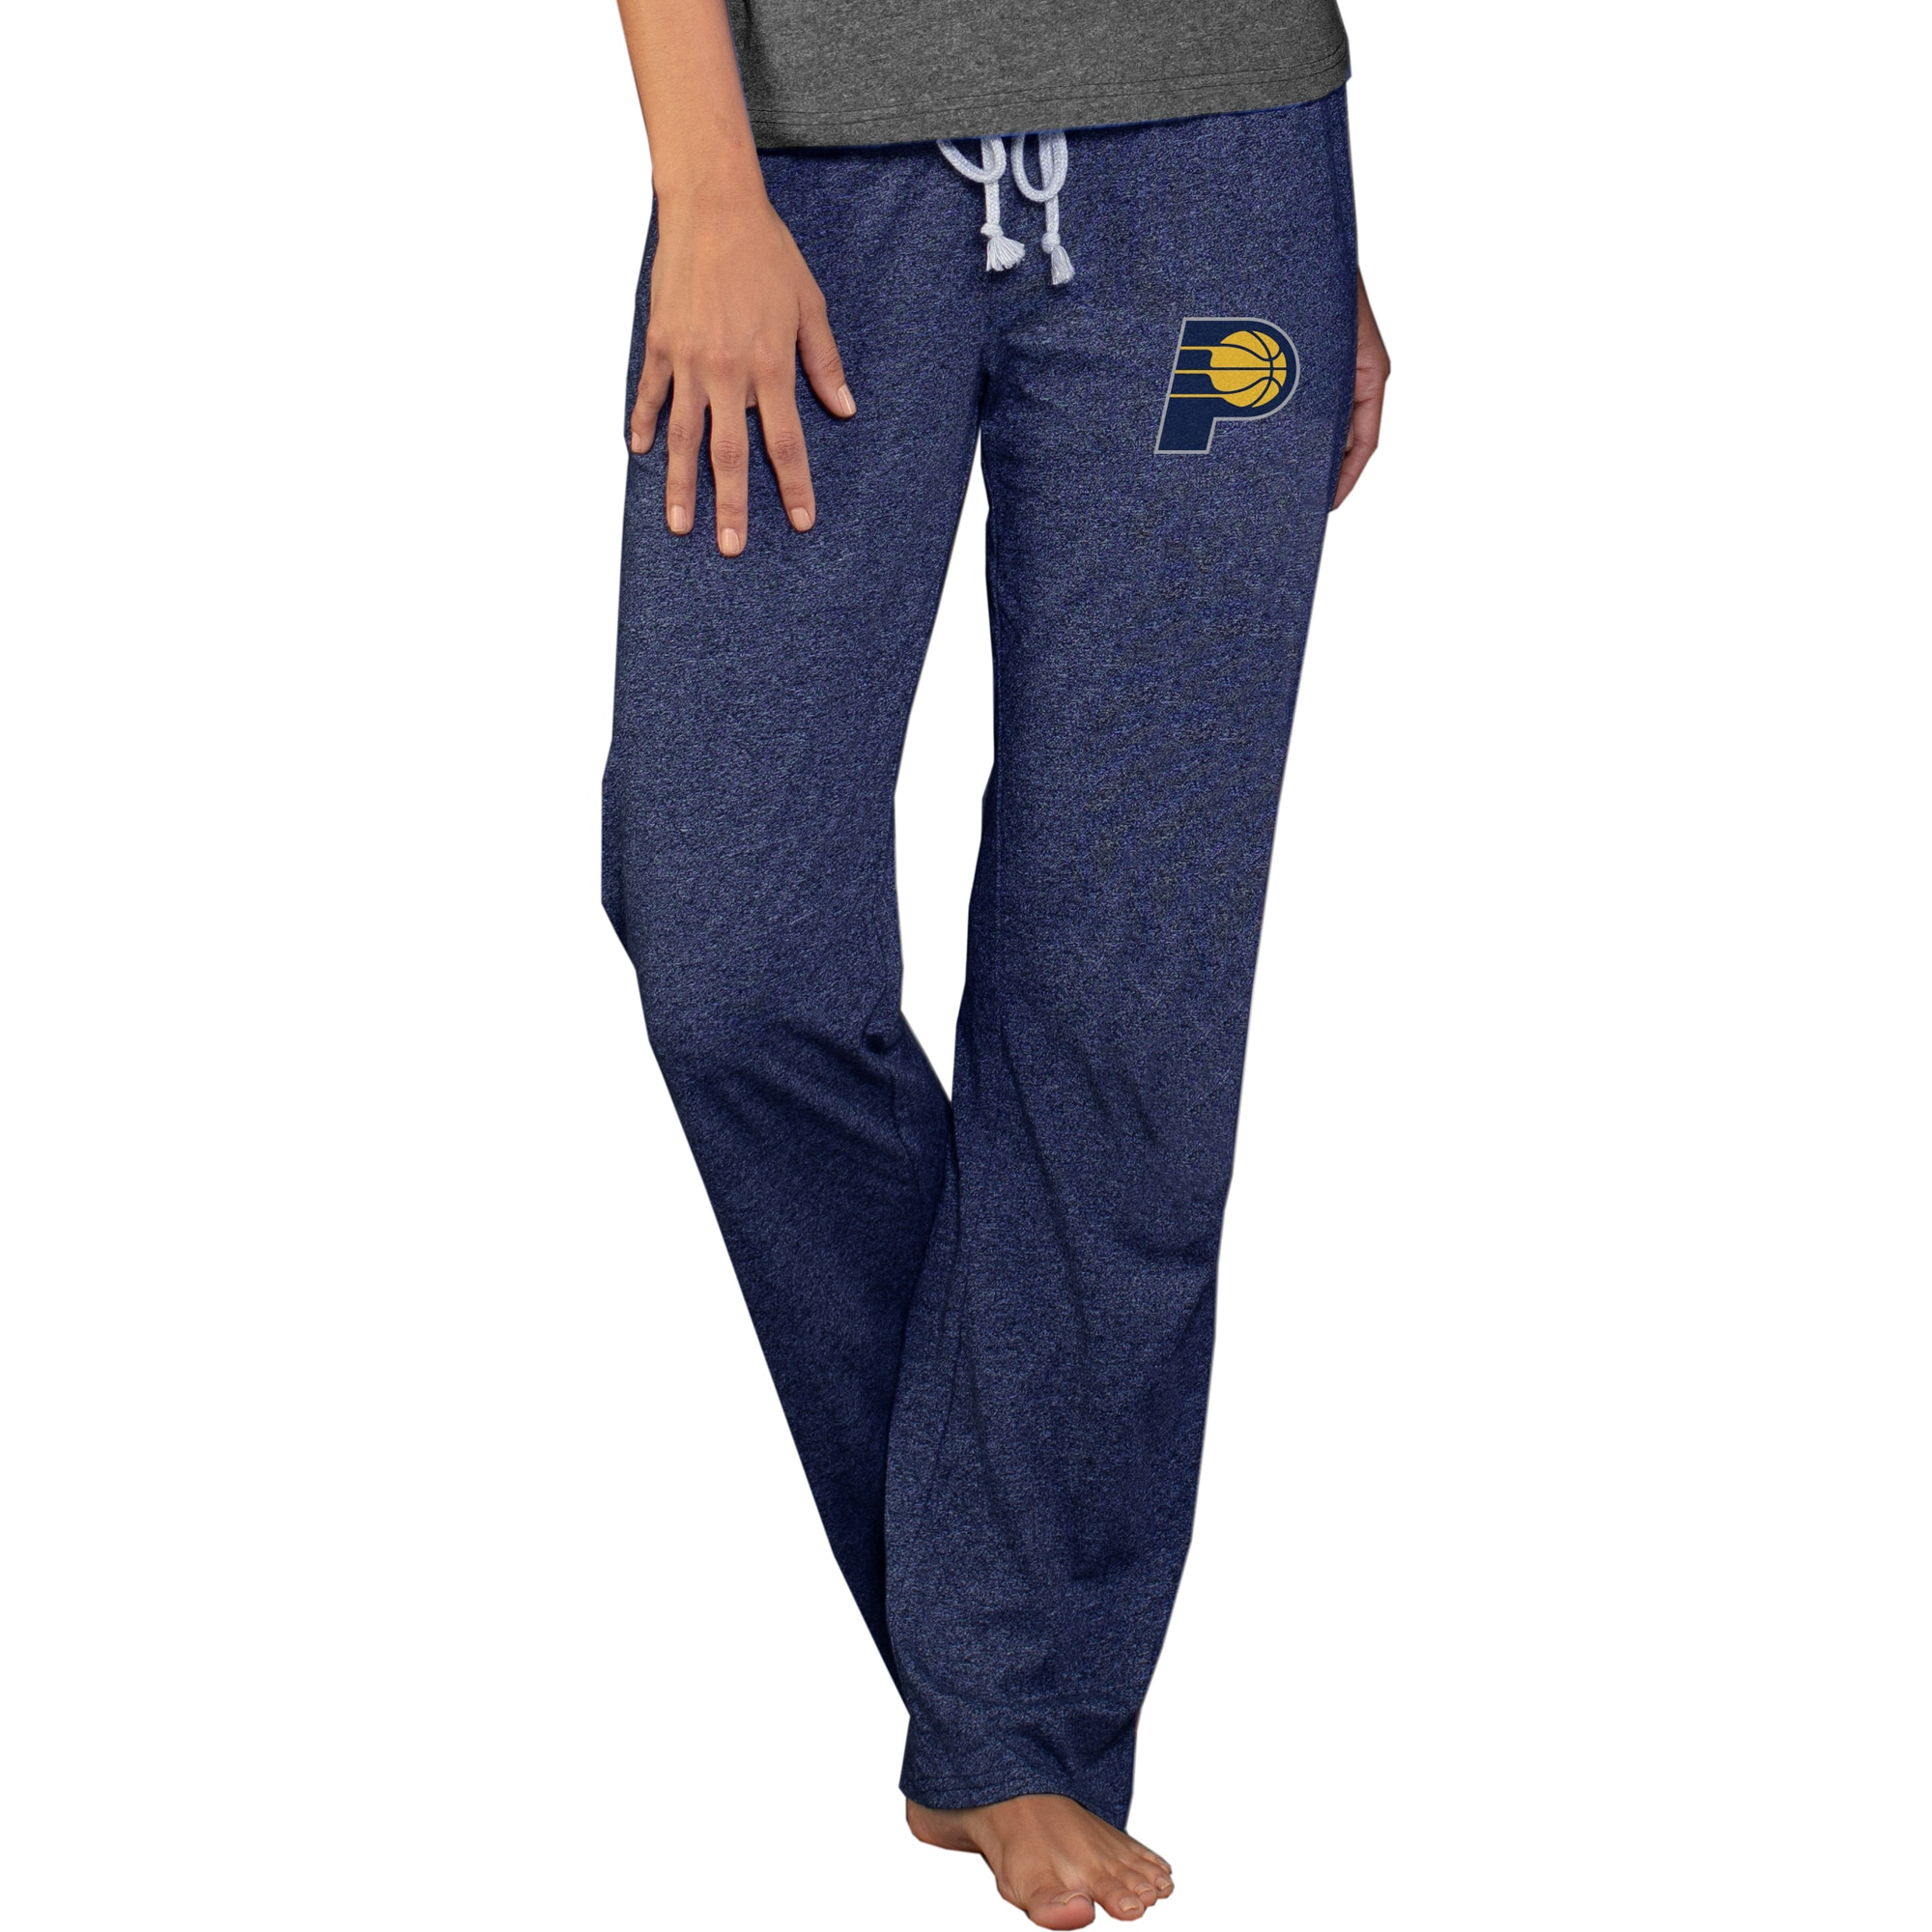 Indiana Pacers Concepts Sport Women's Quest Knit Pants - Navy